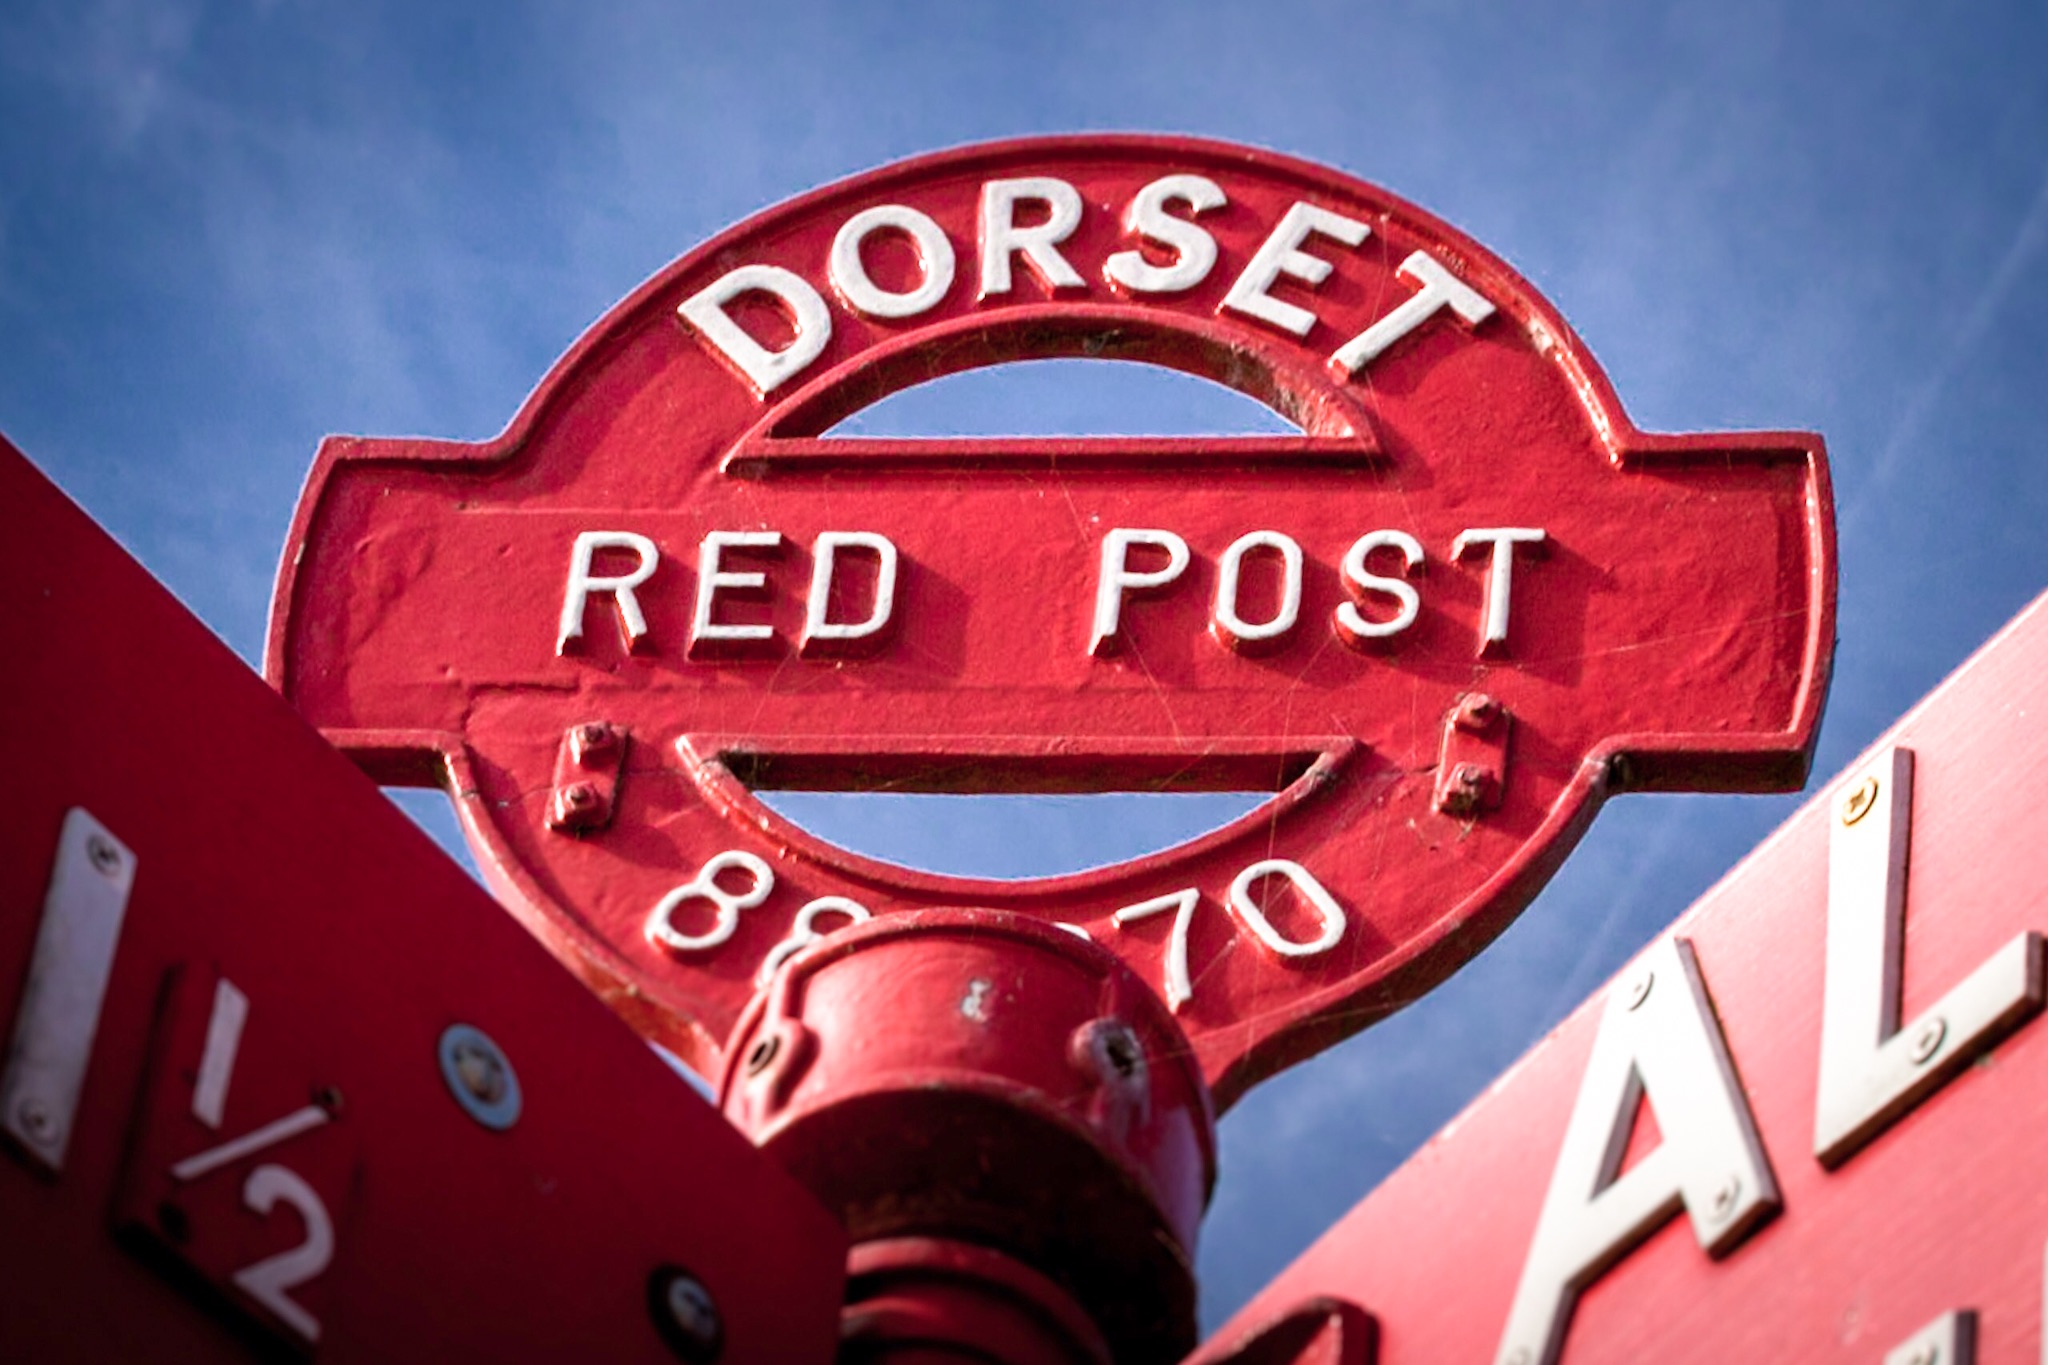 Picture of a Dorset Red Post - landscape photography in Dorset by Rick McEvoy